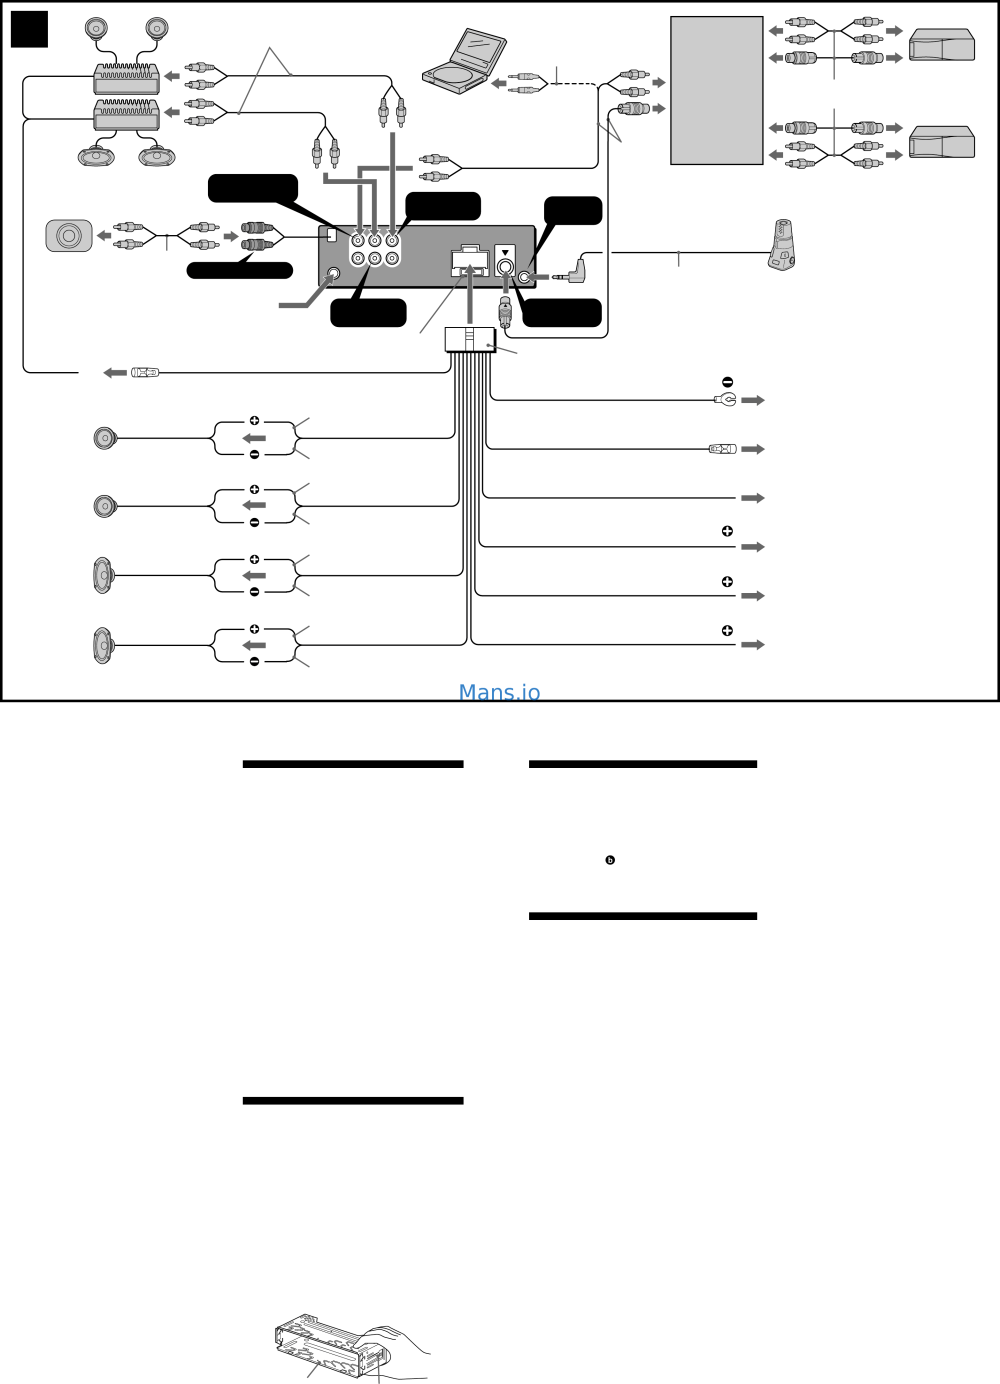 medium resolution of sony cdx fw570 wiring diagram wiring diagram blog sony cdx fw570 installation connection instructions page 2